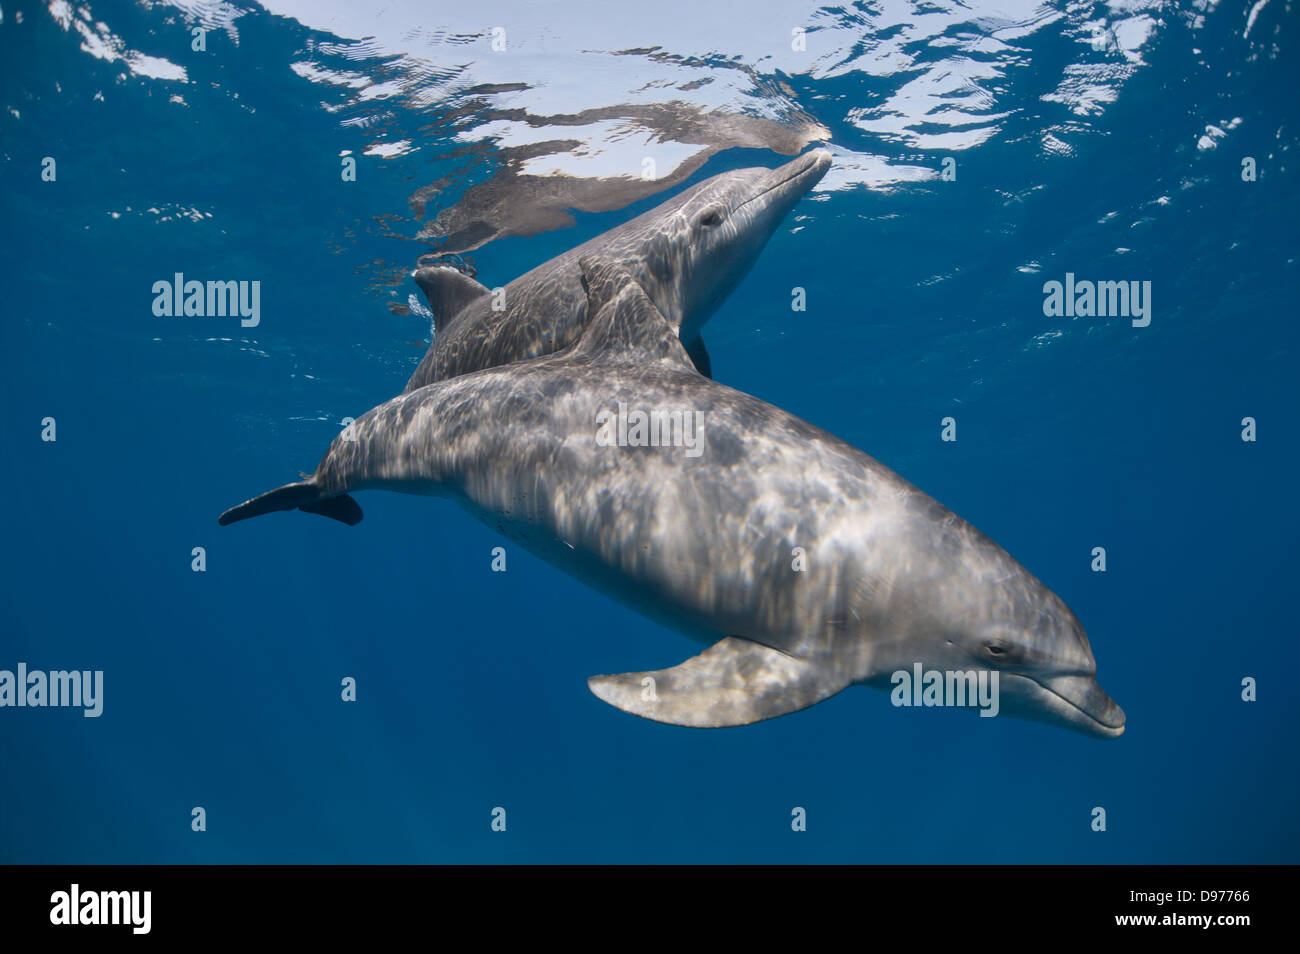 Two Indo-pacific bottlenose dolphins (Tursiops aduncus) swim close to the surface. - Stock Image